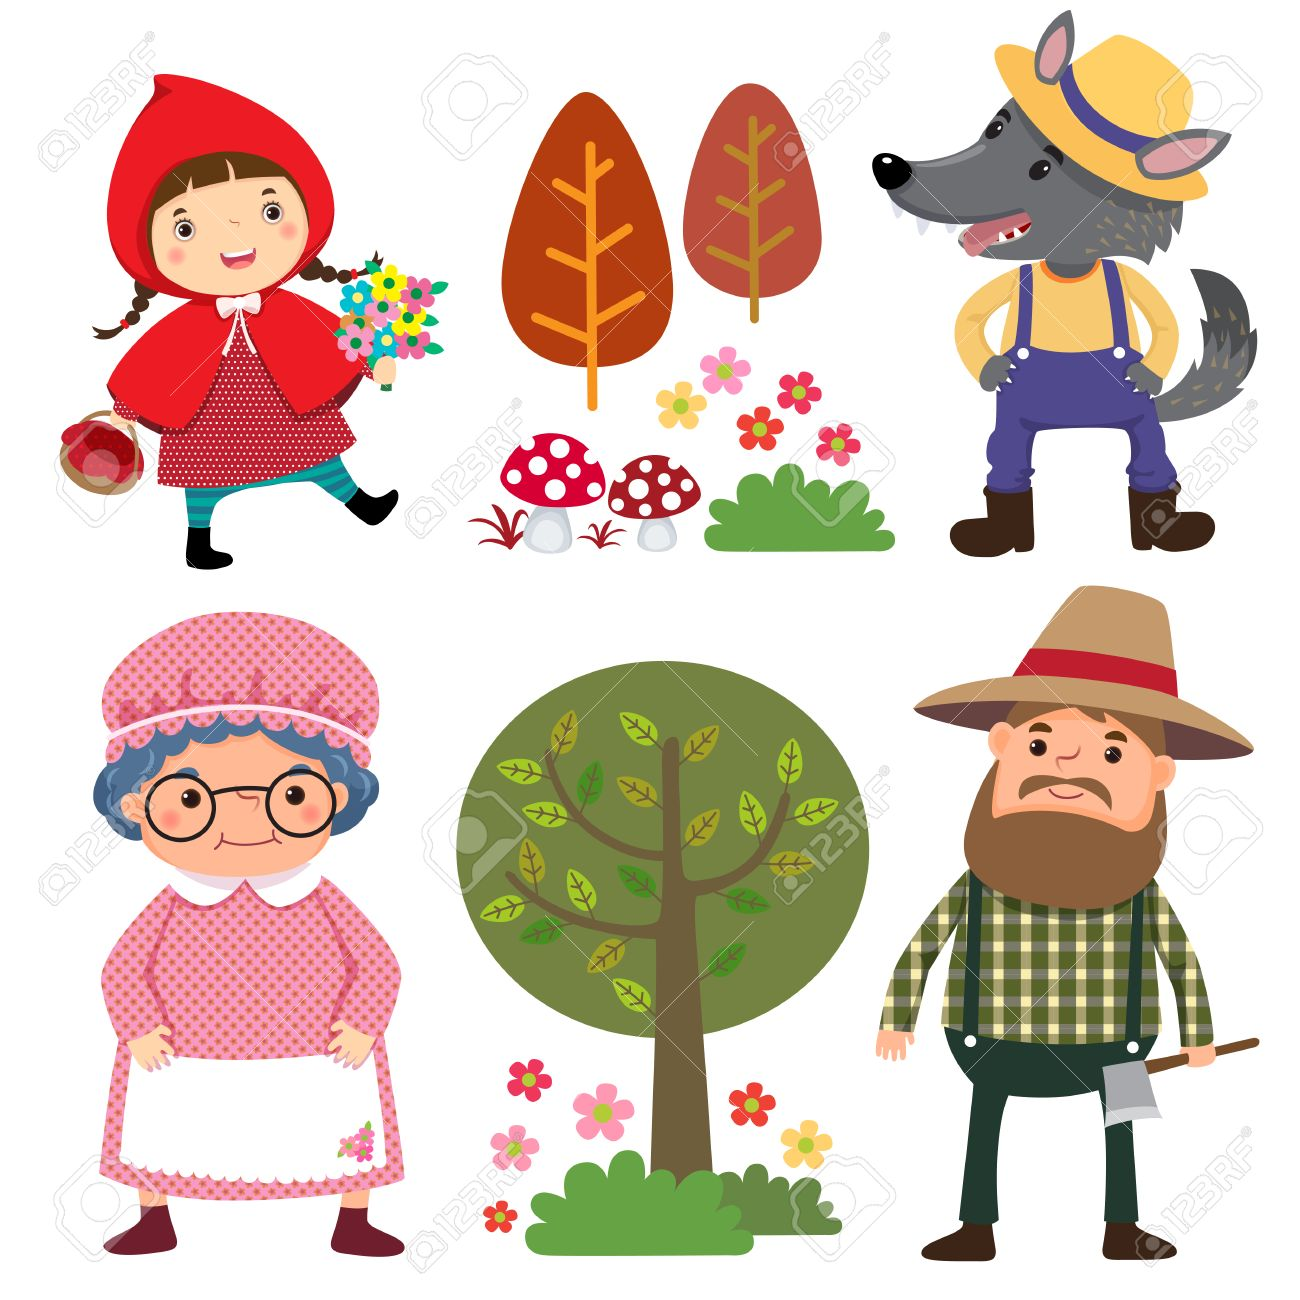 Set of characters from Little Red Riding Hood fairy tale.